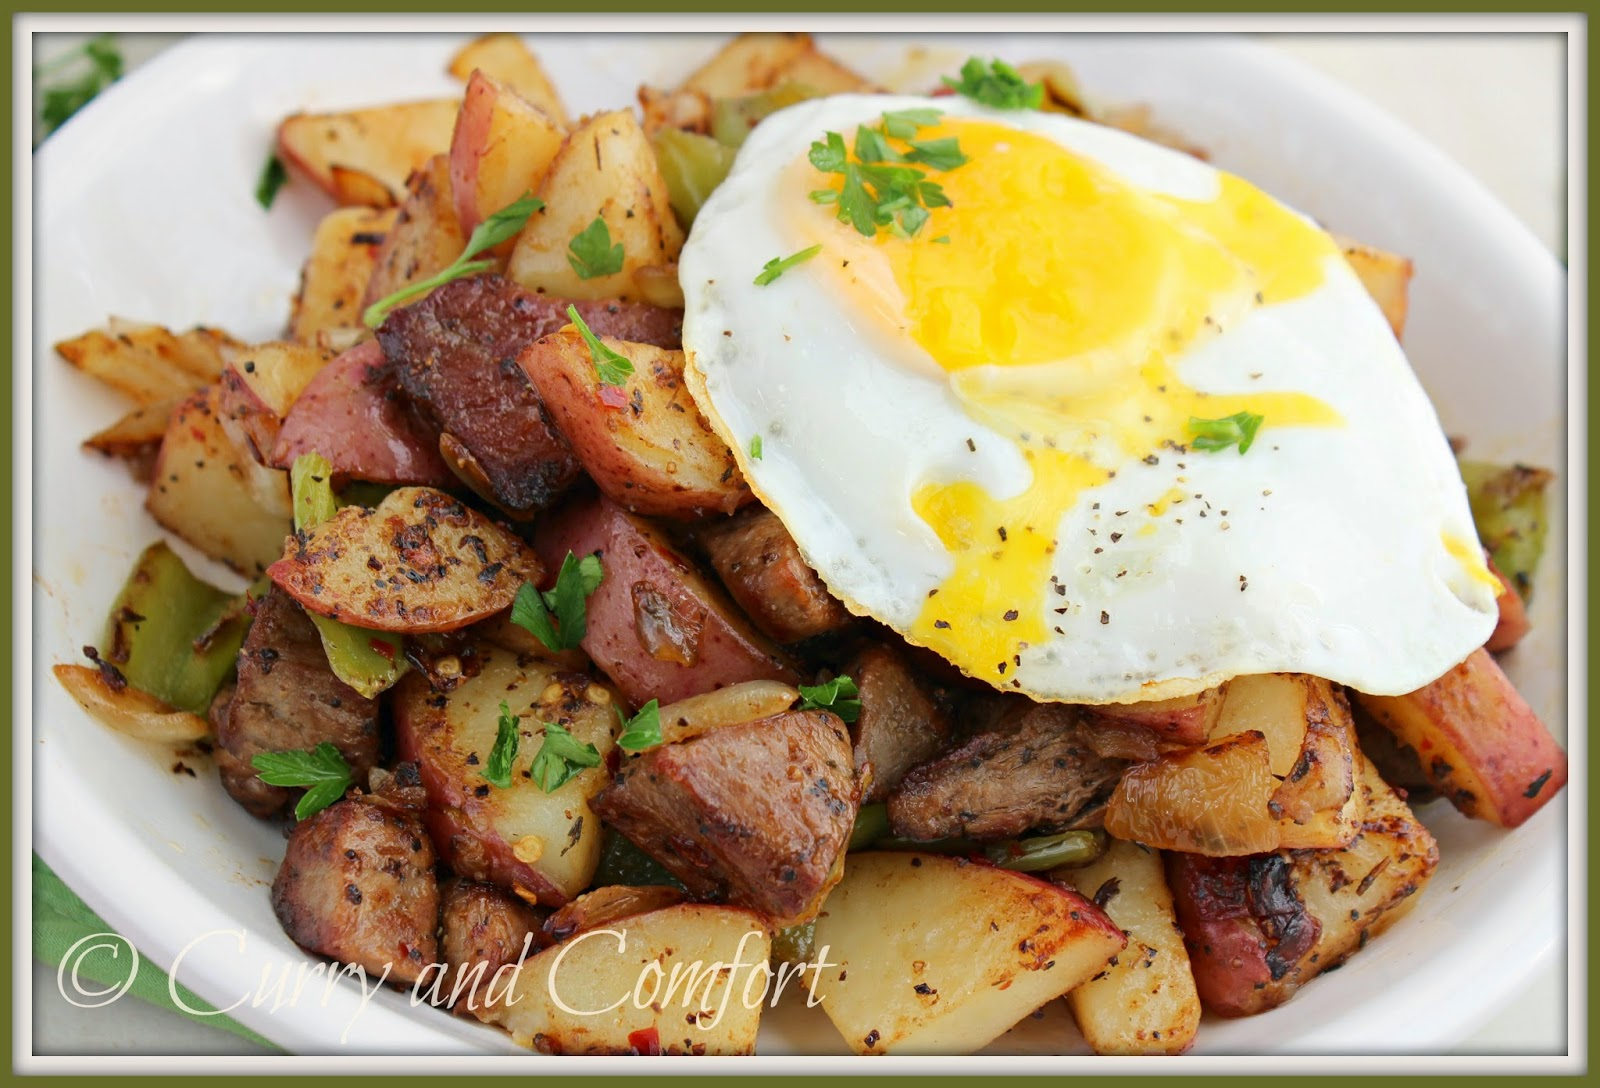 Curry and Comfort: Steak and Potato Hash Topped with a Fried Egg